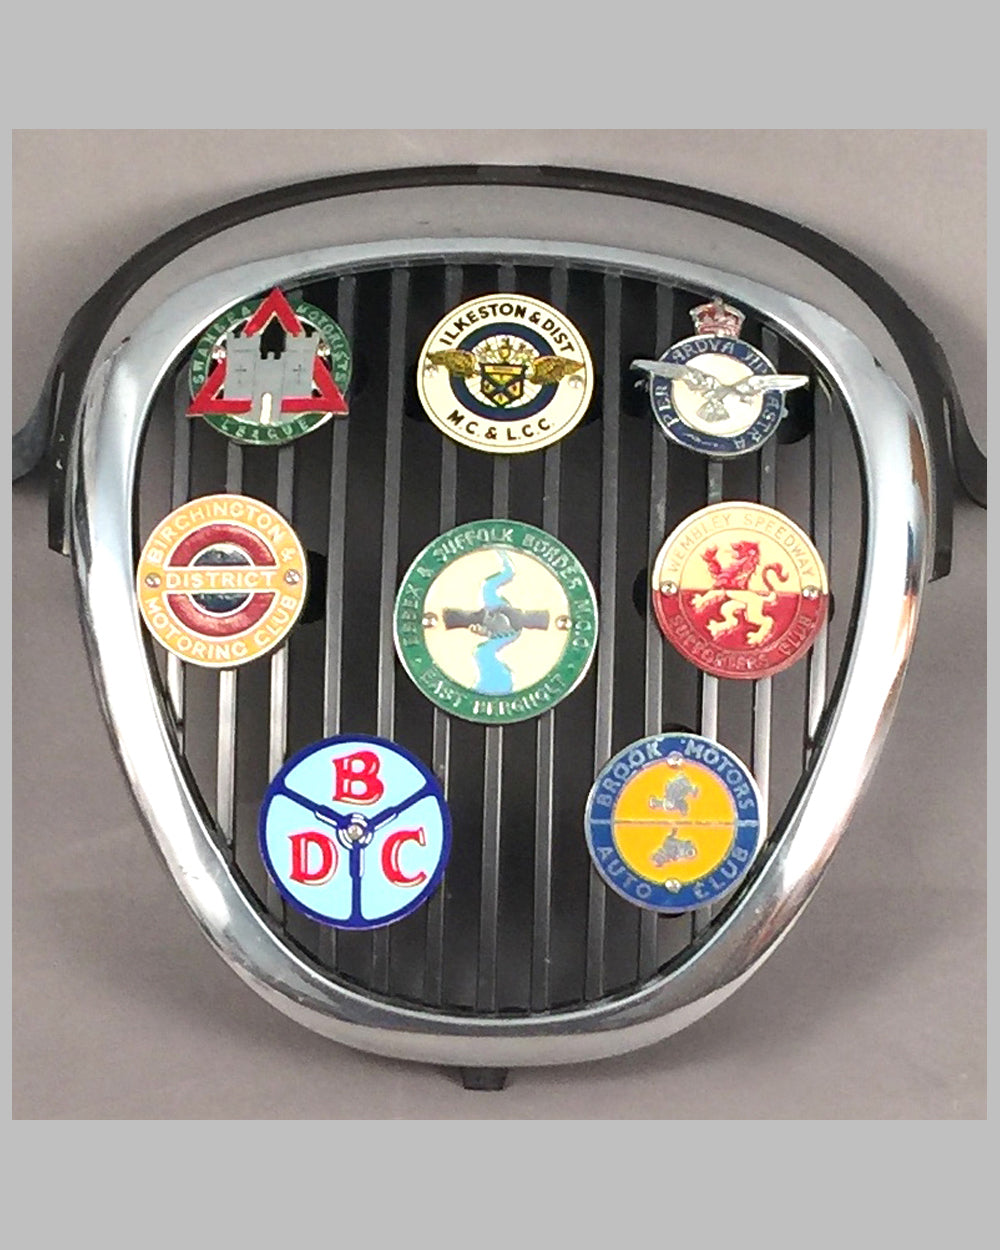 Jaguar S Type front grill with 8 British club badges displayed